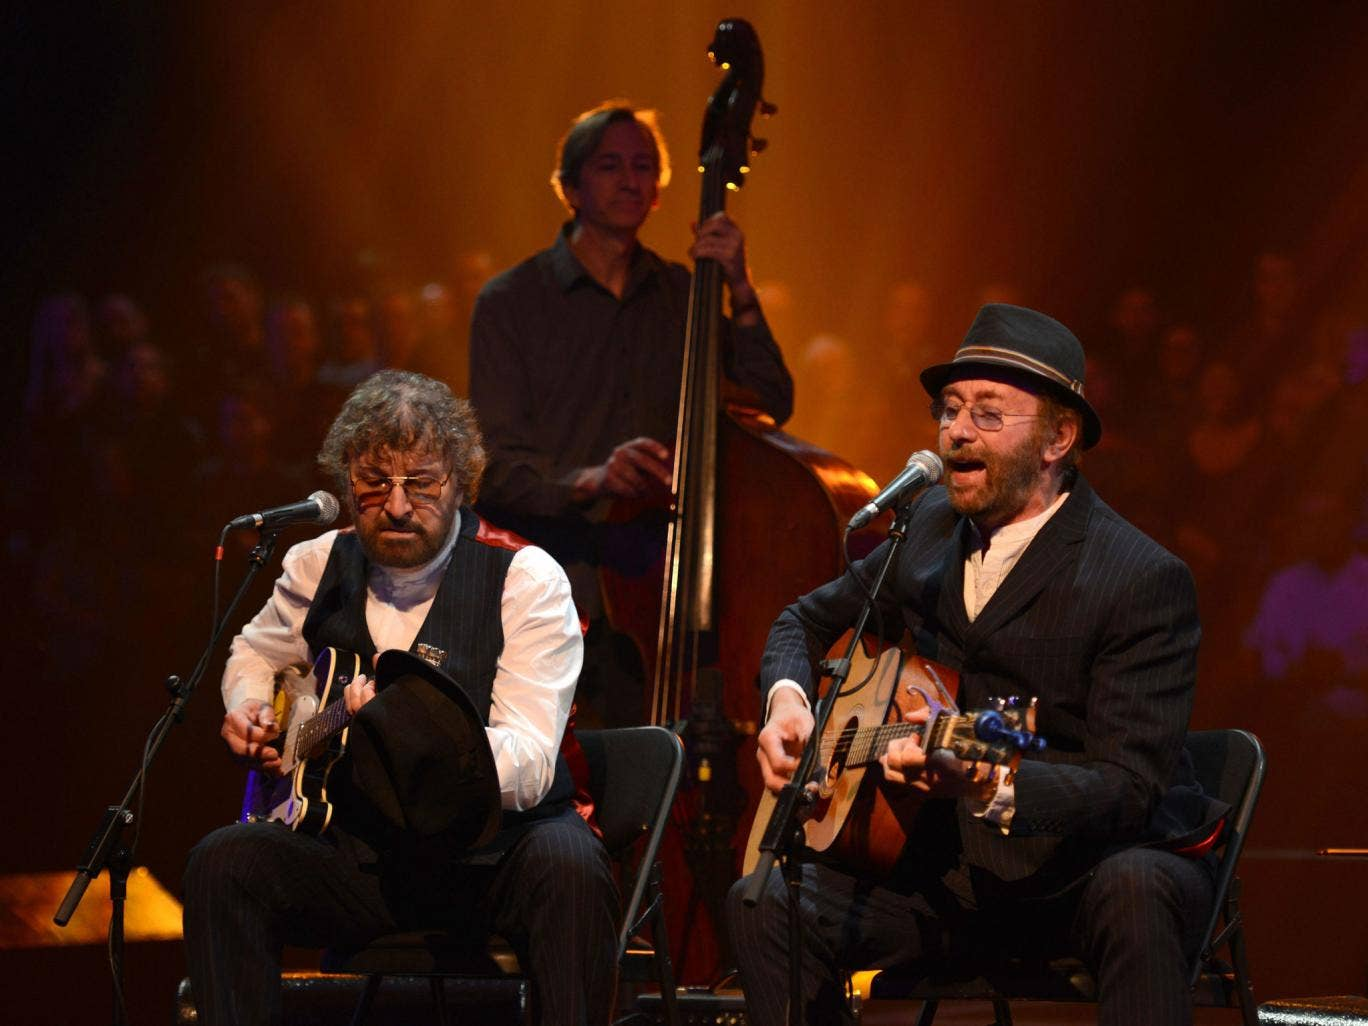 Chas and Dave - Chas Hodges, Dave Peacock